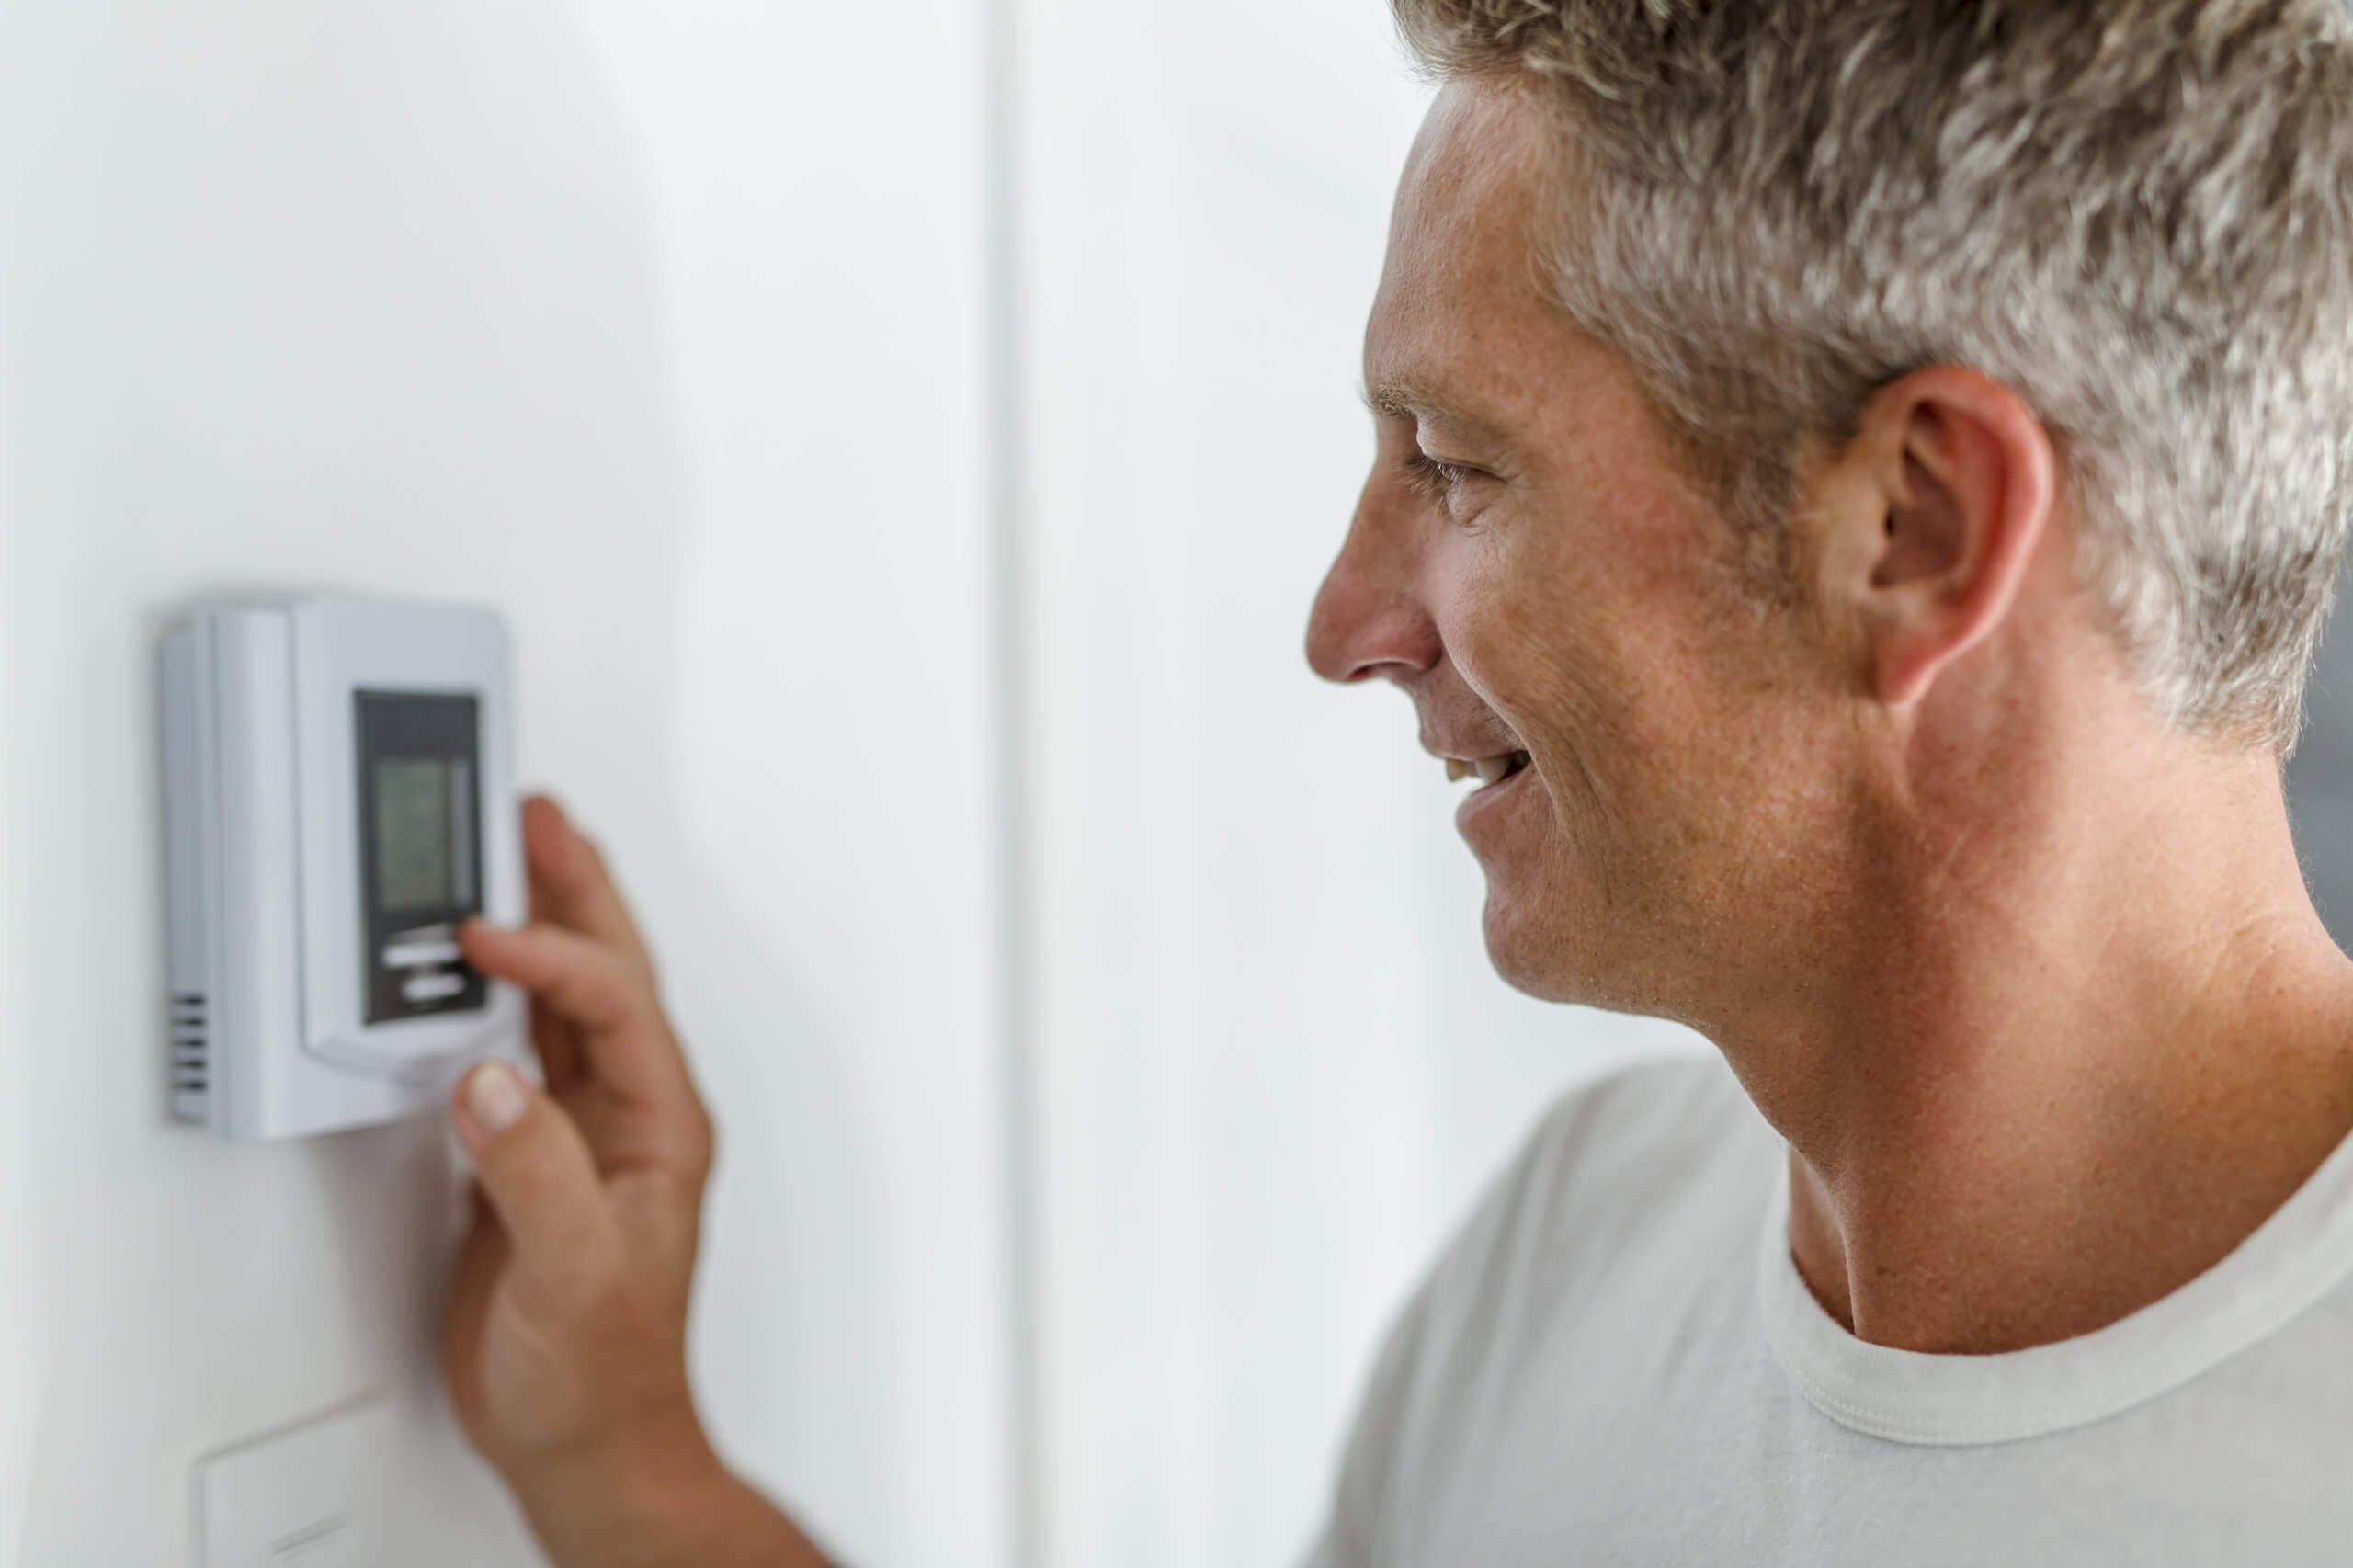 Adjusting a programmable thermostat